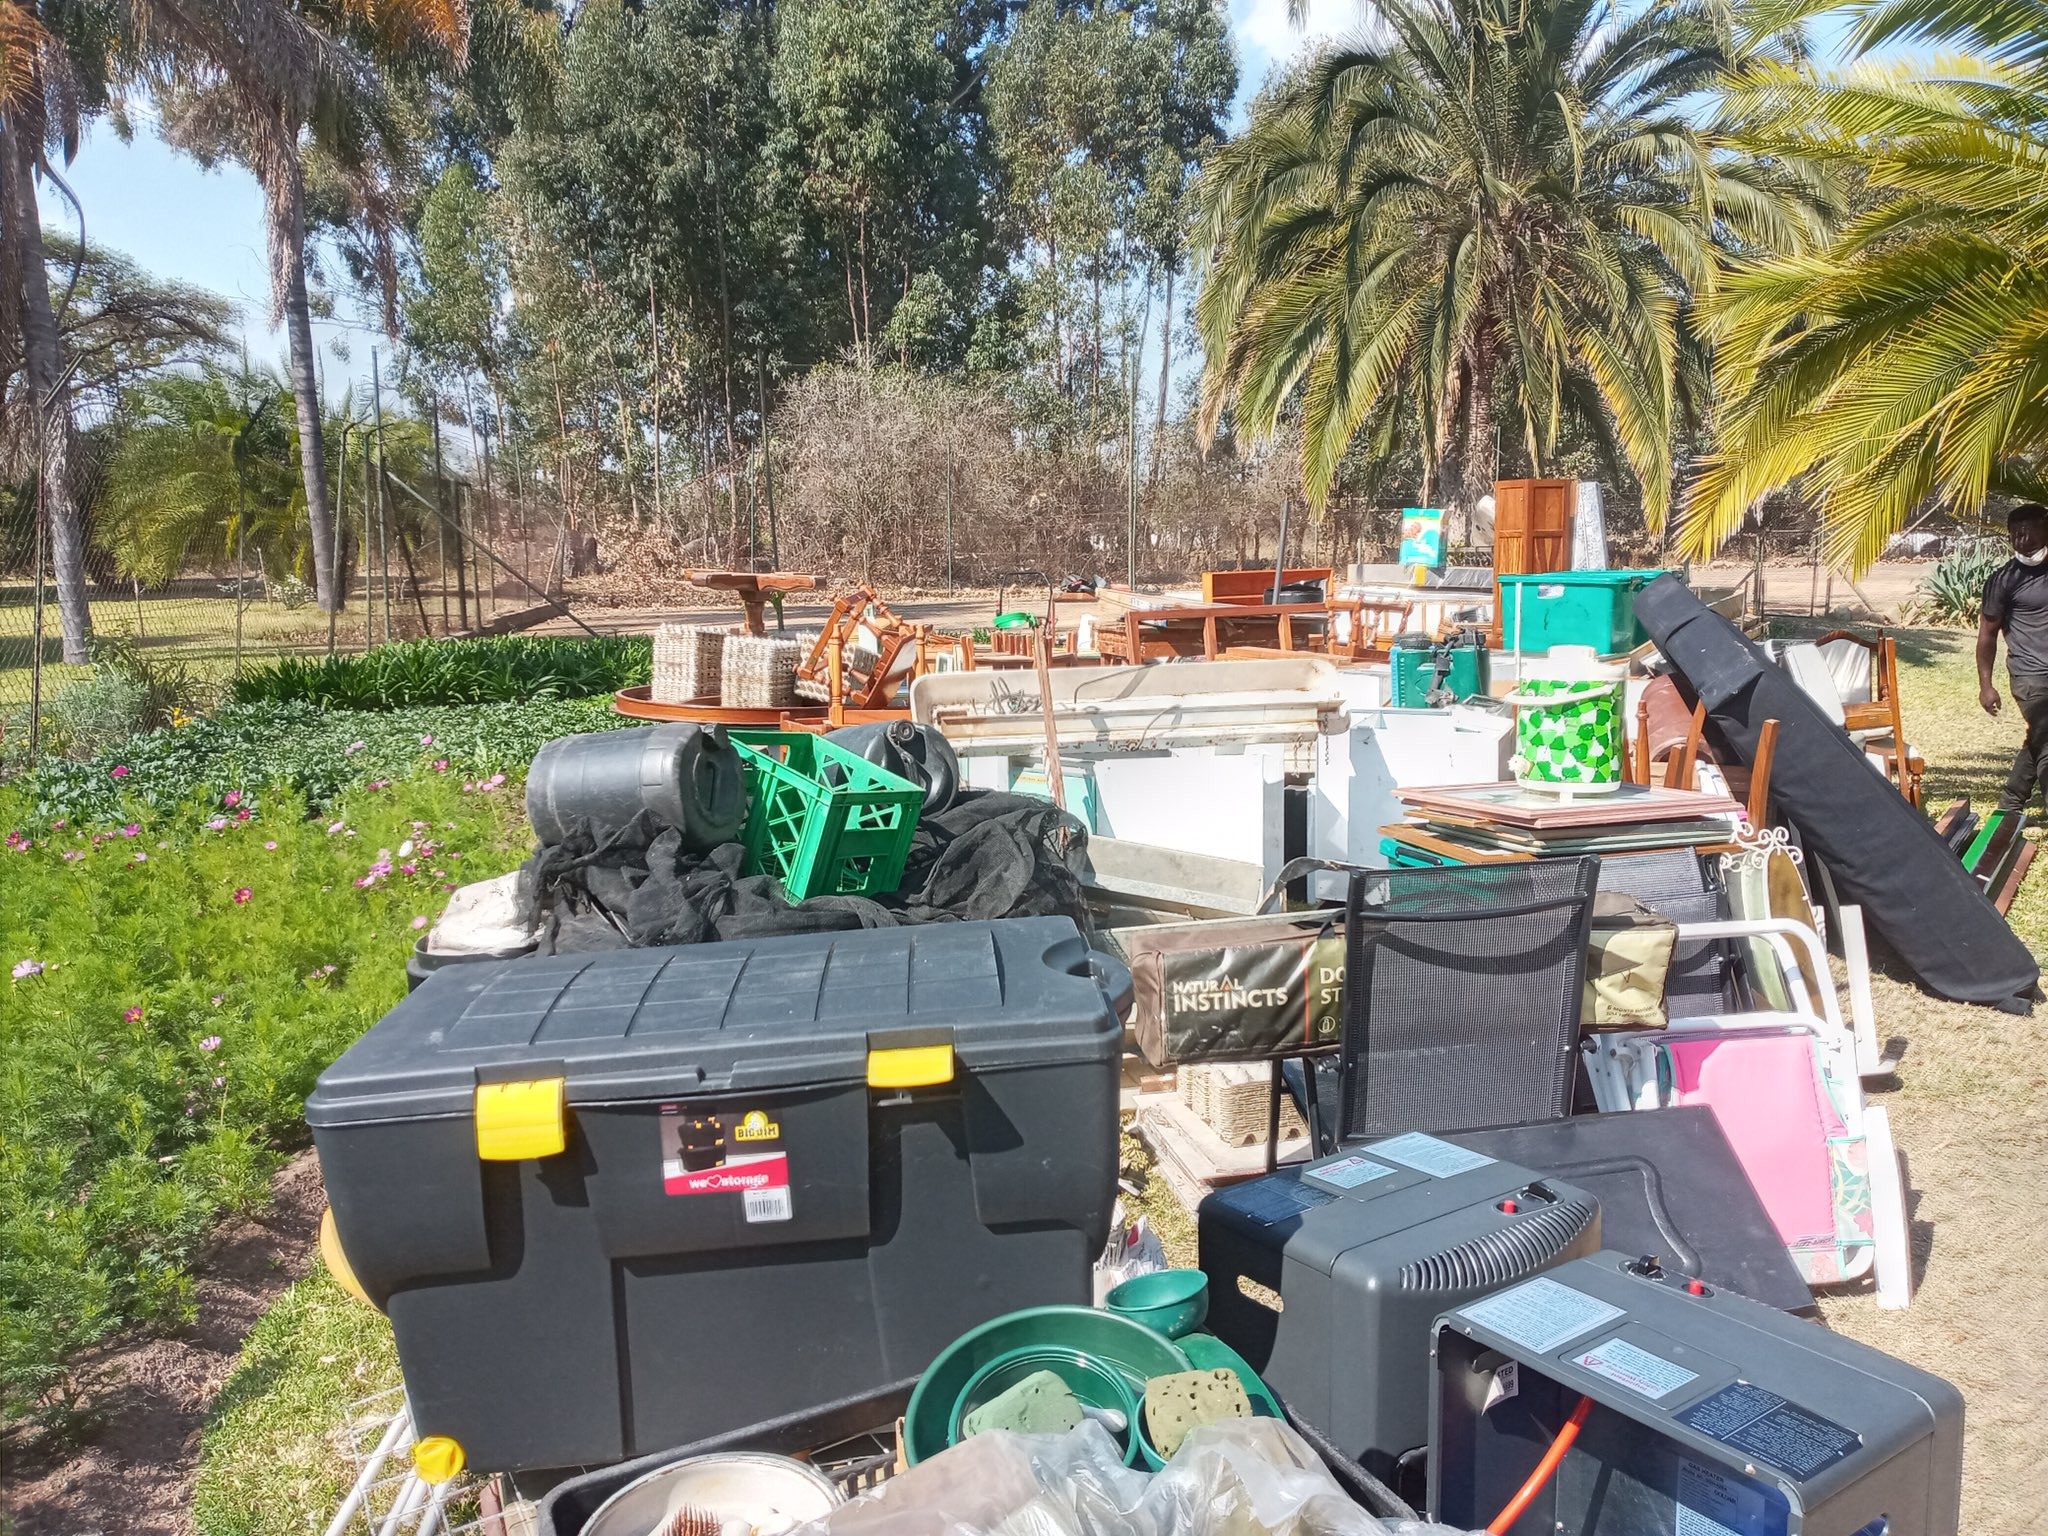 PICTURES: Evicted Farmer Martin Grobler's Property Thrown Out ⋆ Pindula News